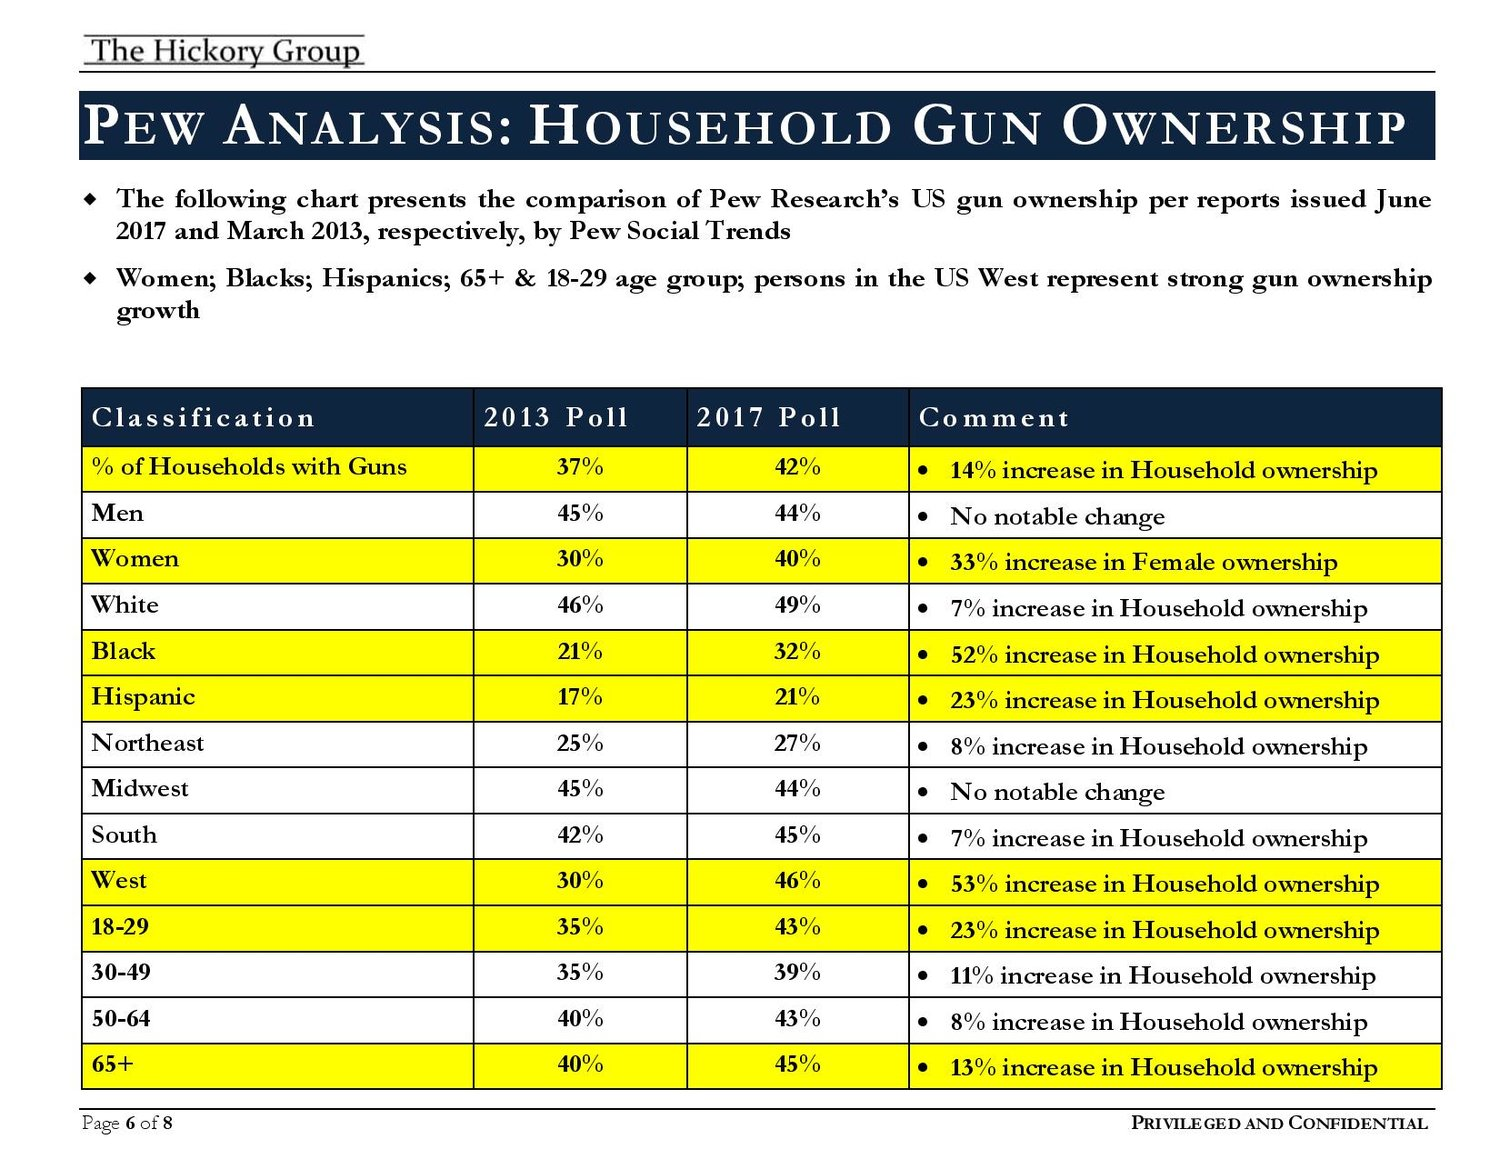 FINAL+___+FLASH+REPORT+Women+and+Firearm+Ownership+(May+2018)+Privileged+and+Confidential-page-006.jpg